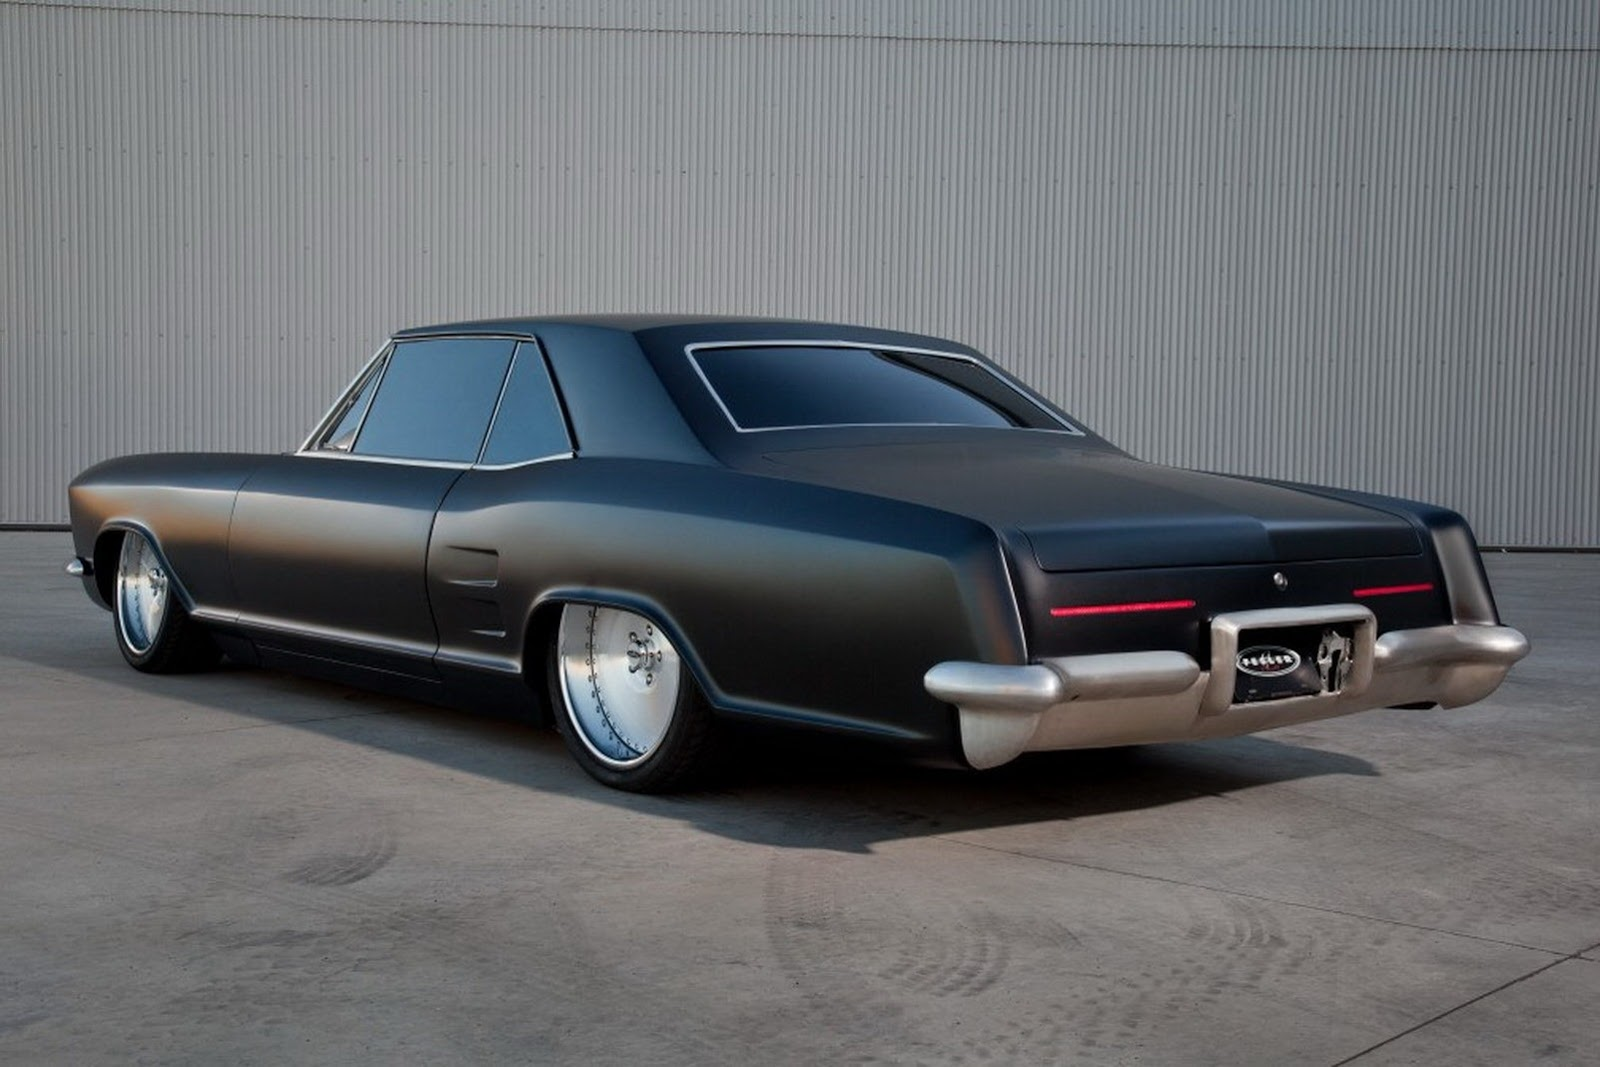 Fesler-Modified 1963 Buick Riviera Looks Sinister